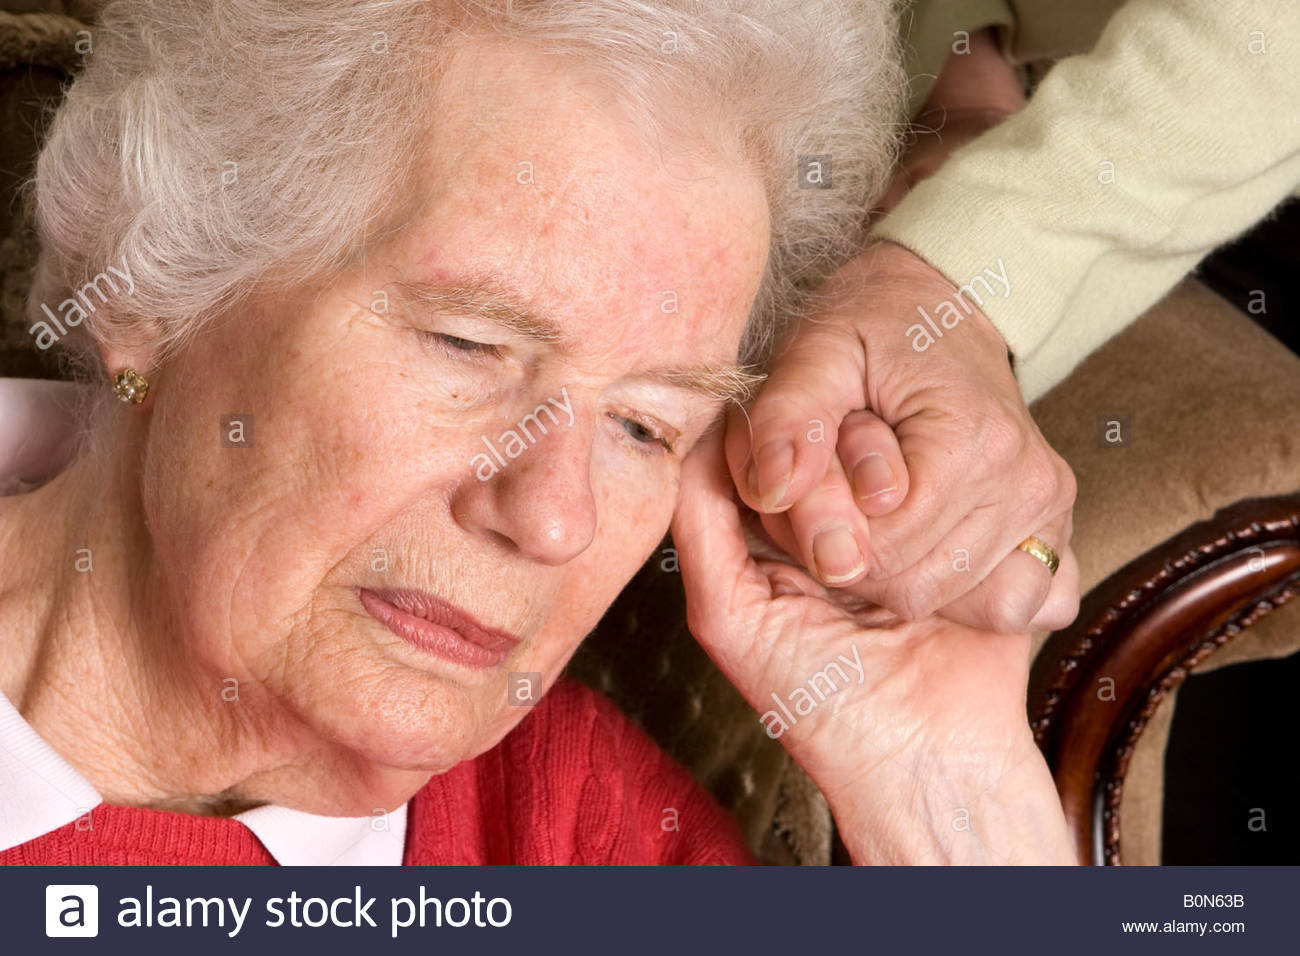 Old woman being comforted. - Stock Image